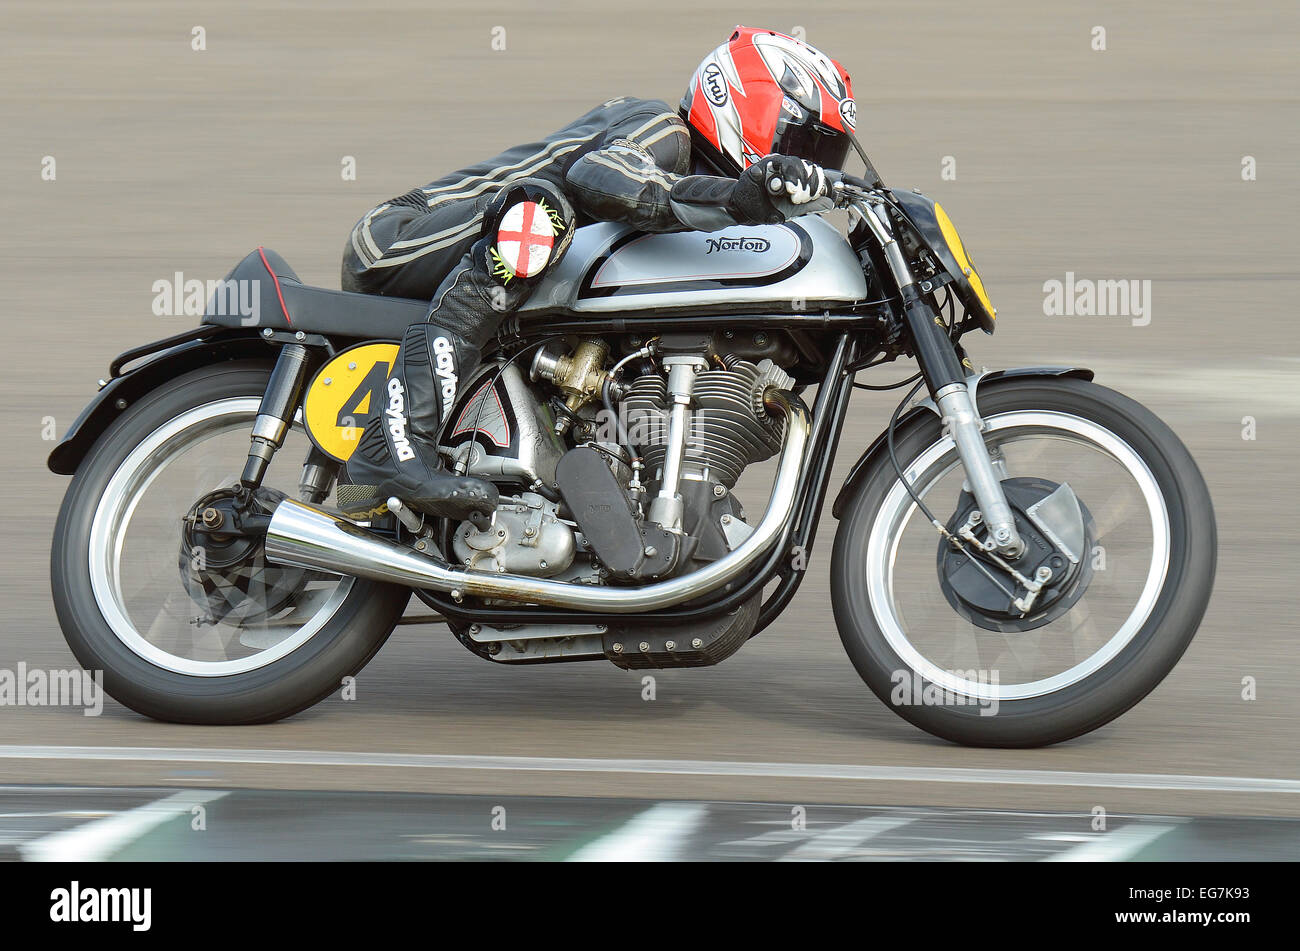 the-norton-manx-or-manx-norton-is-a-british-racing-motorcycle-that-EG7K93.jpg